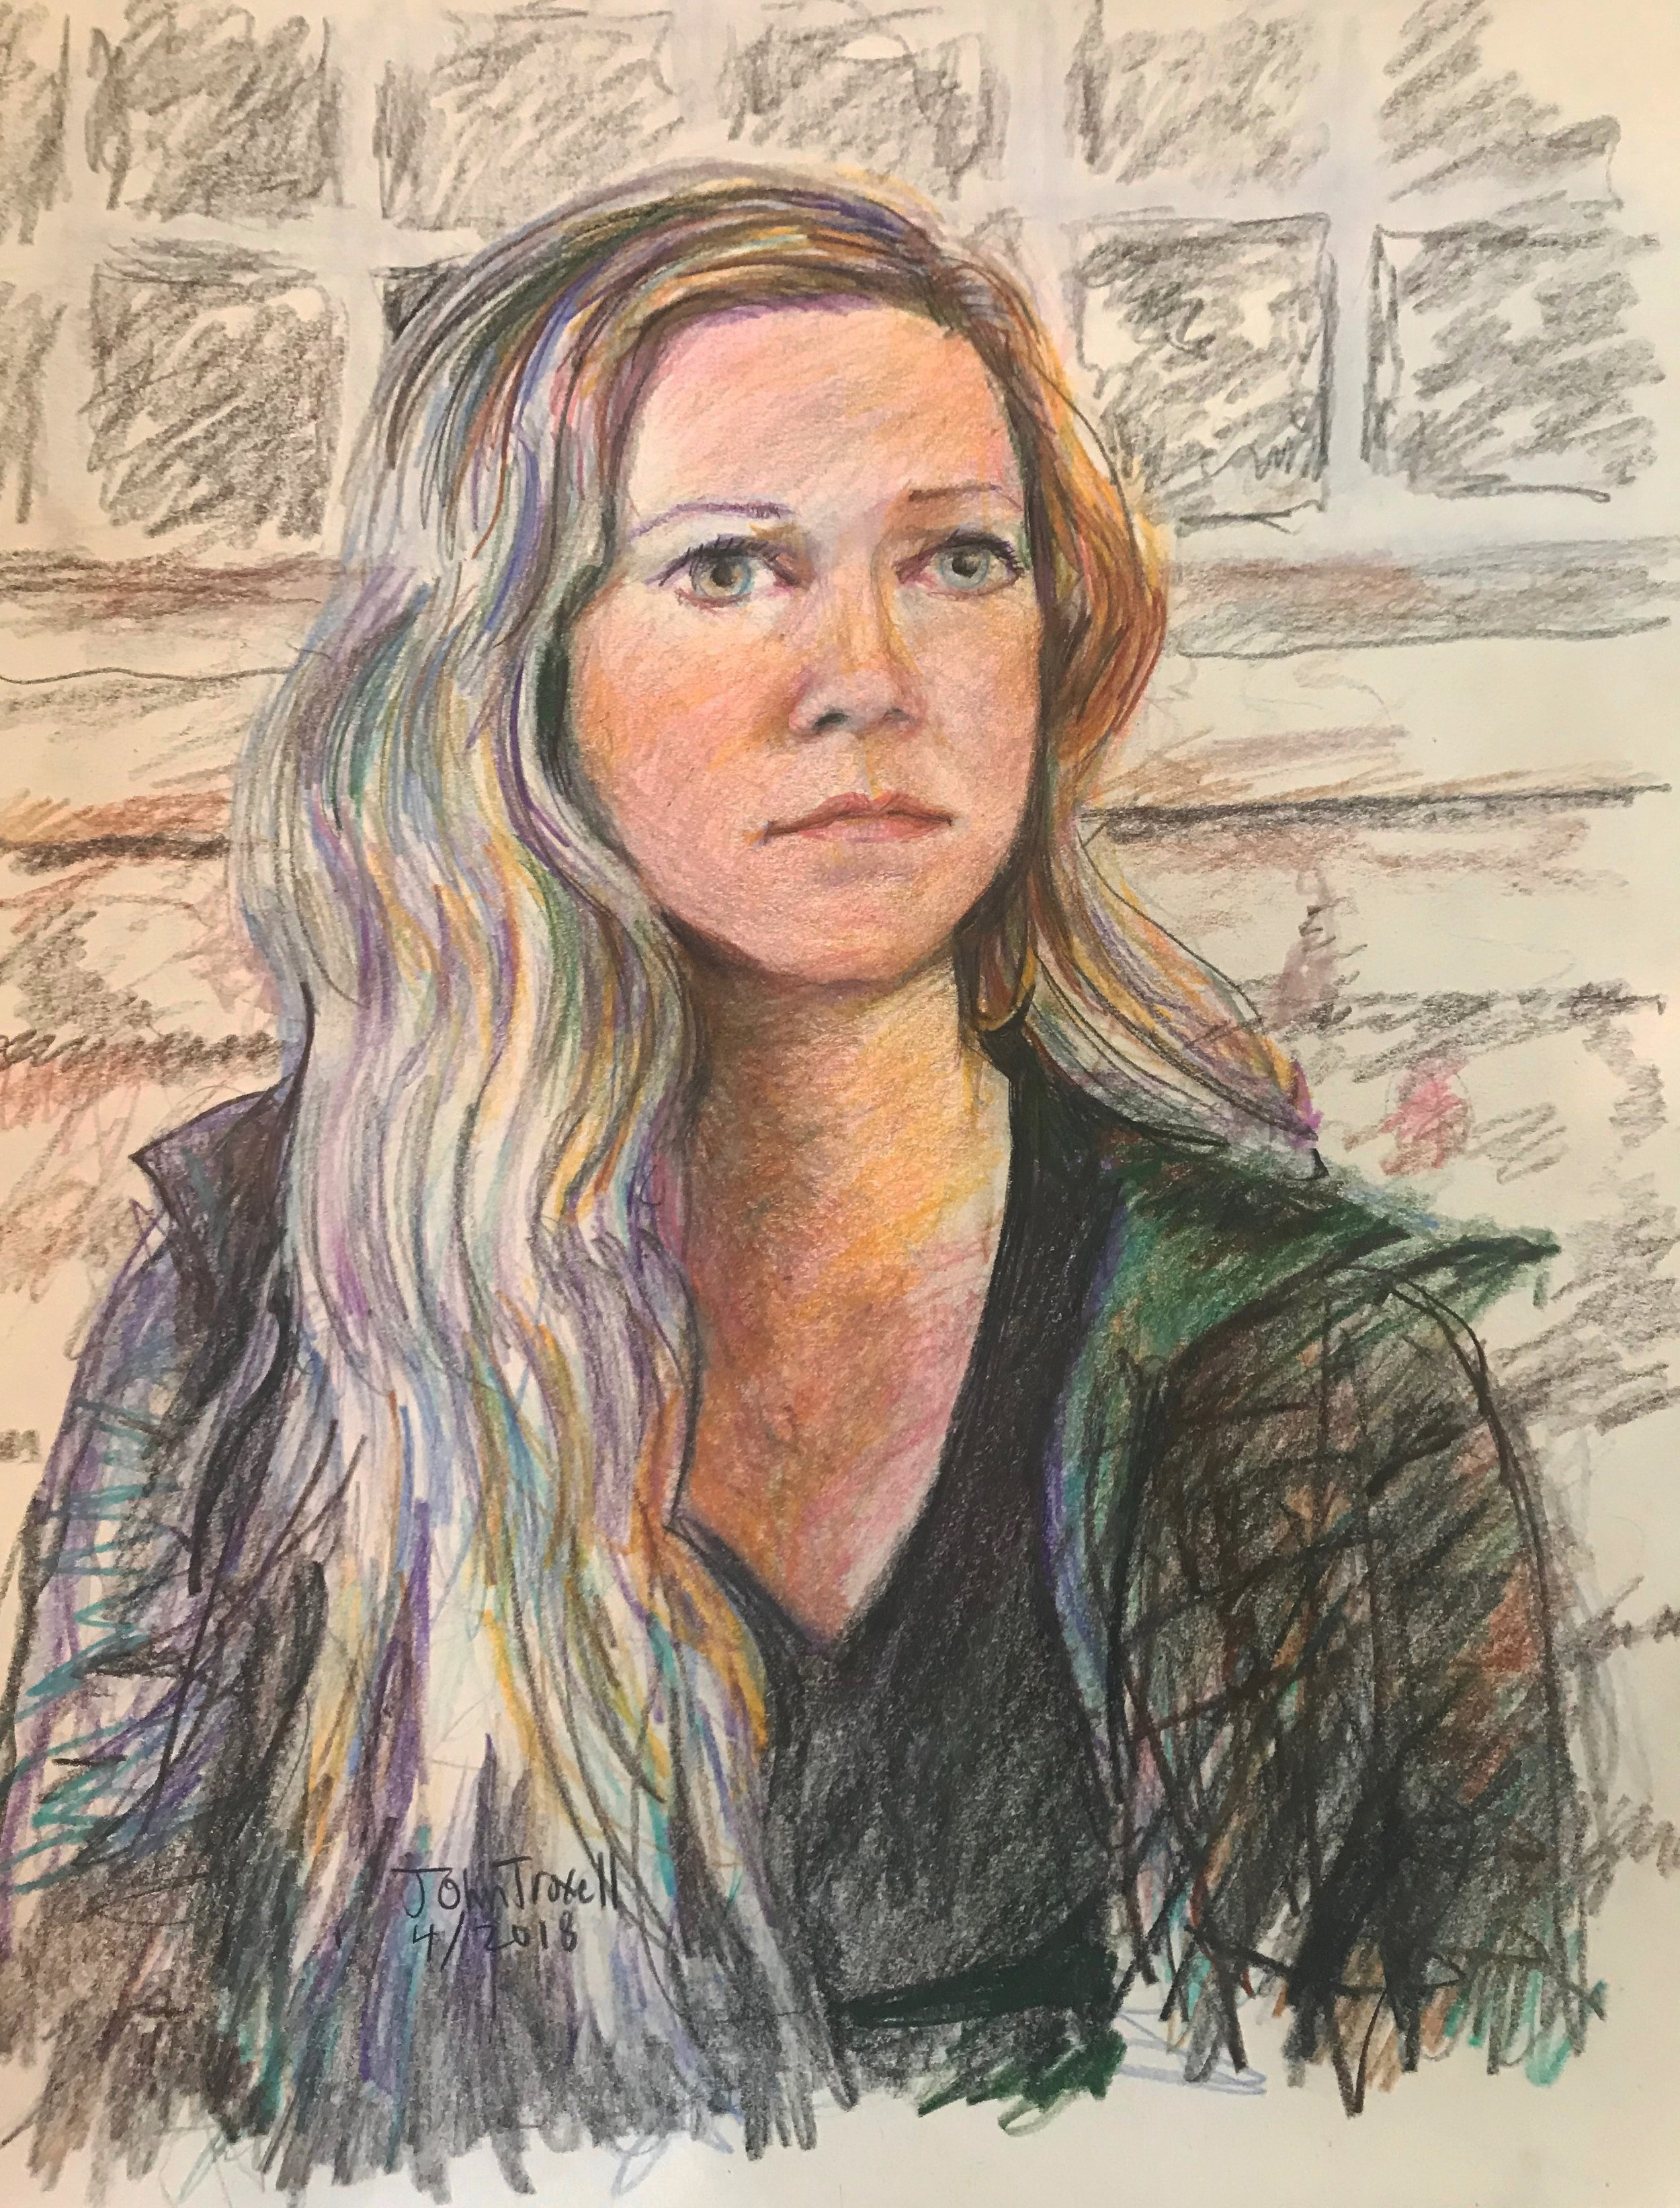 John Troxell did this colored pencil drawing of Jodi Gilmore.